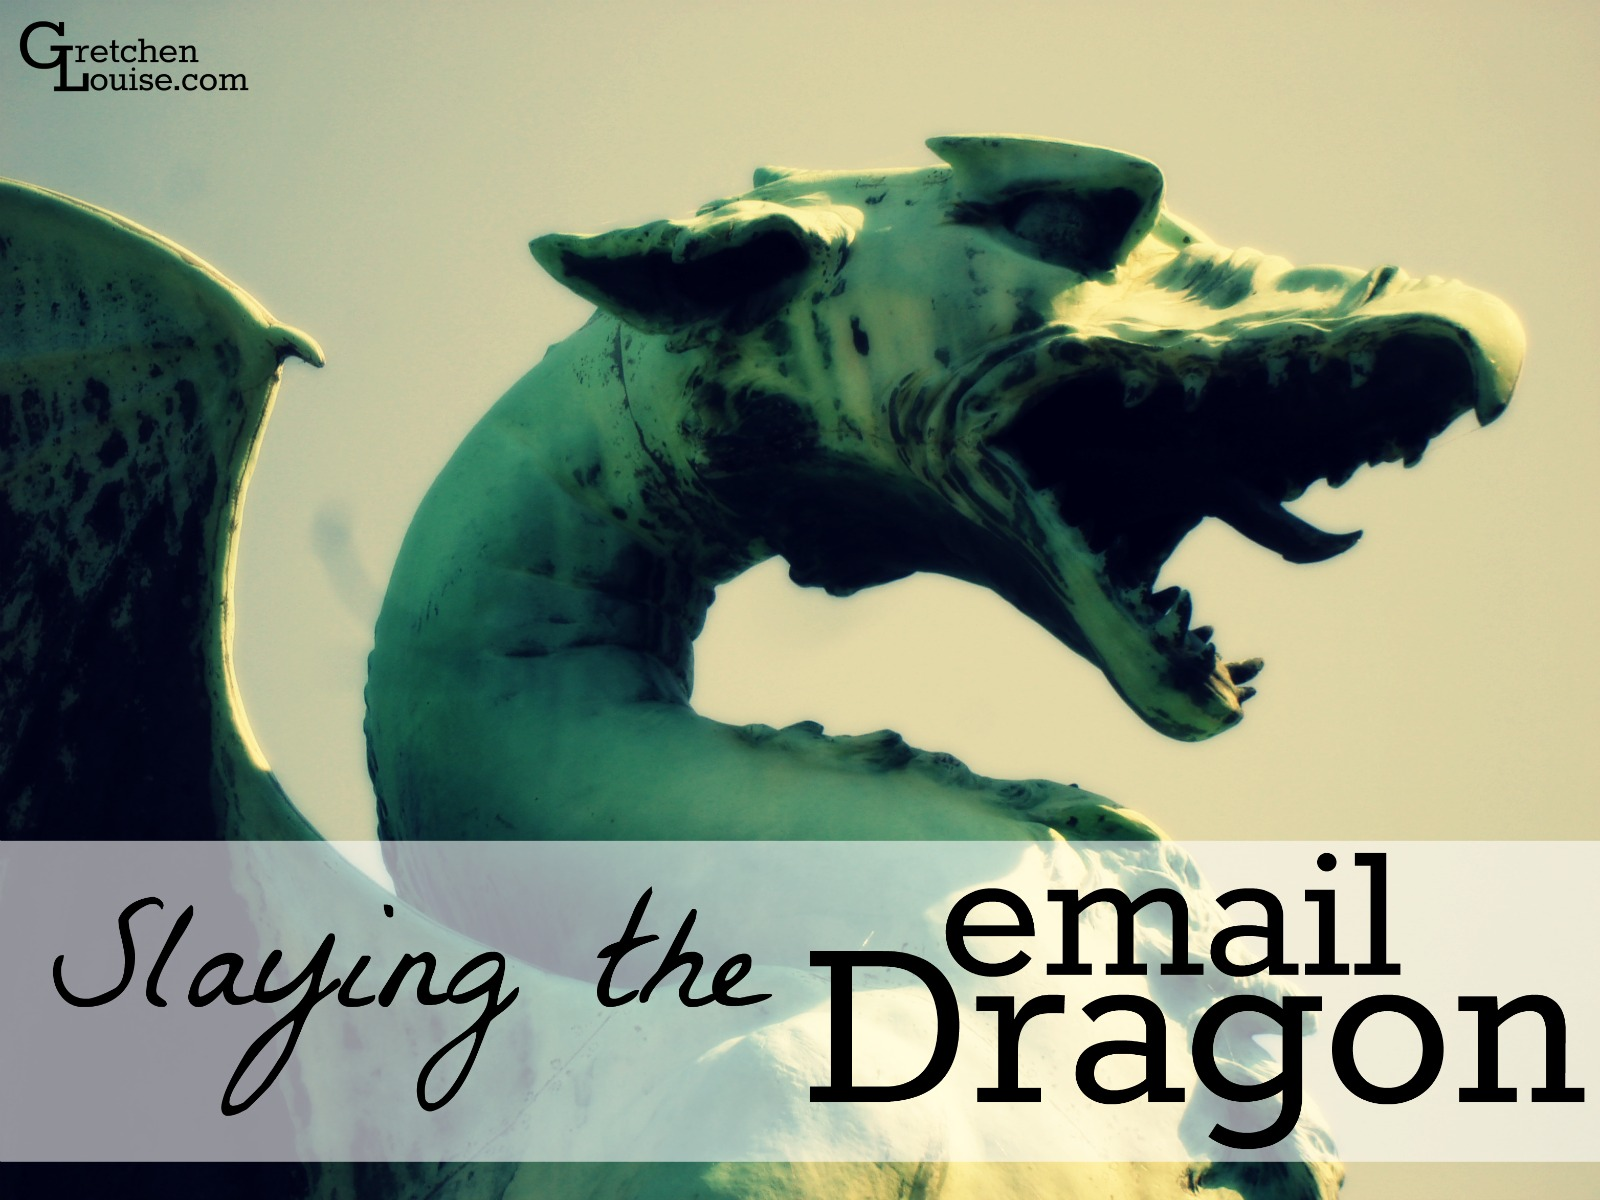 Slaying the Email Dragon